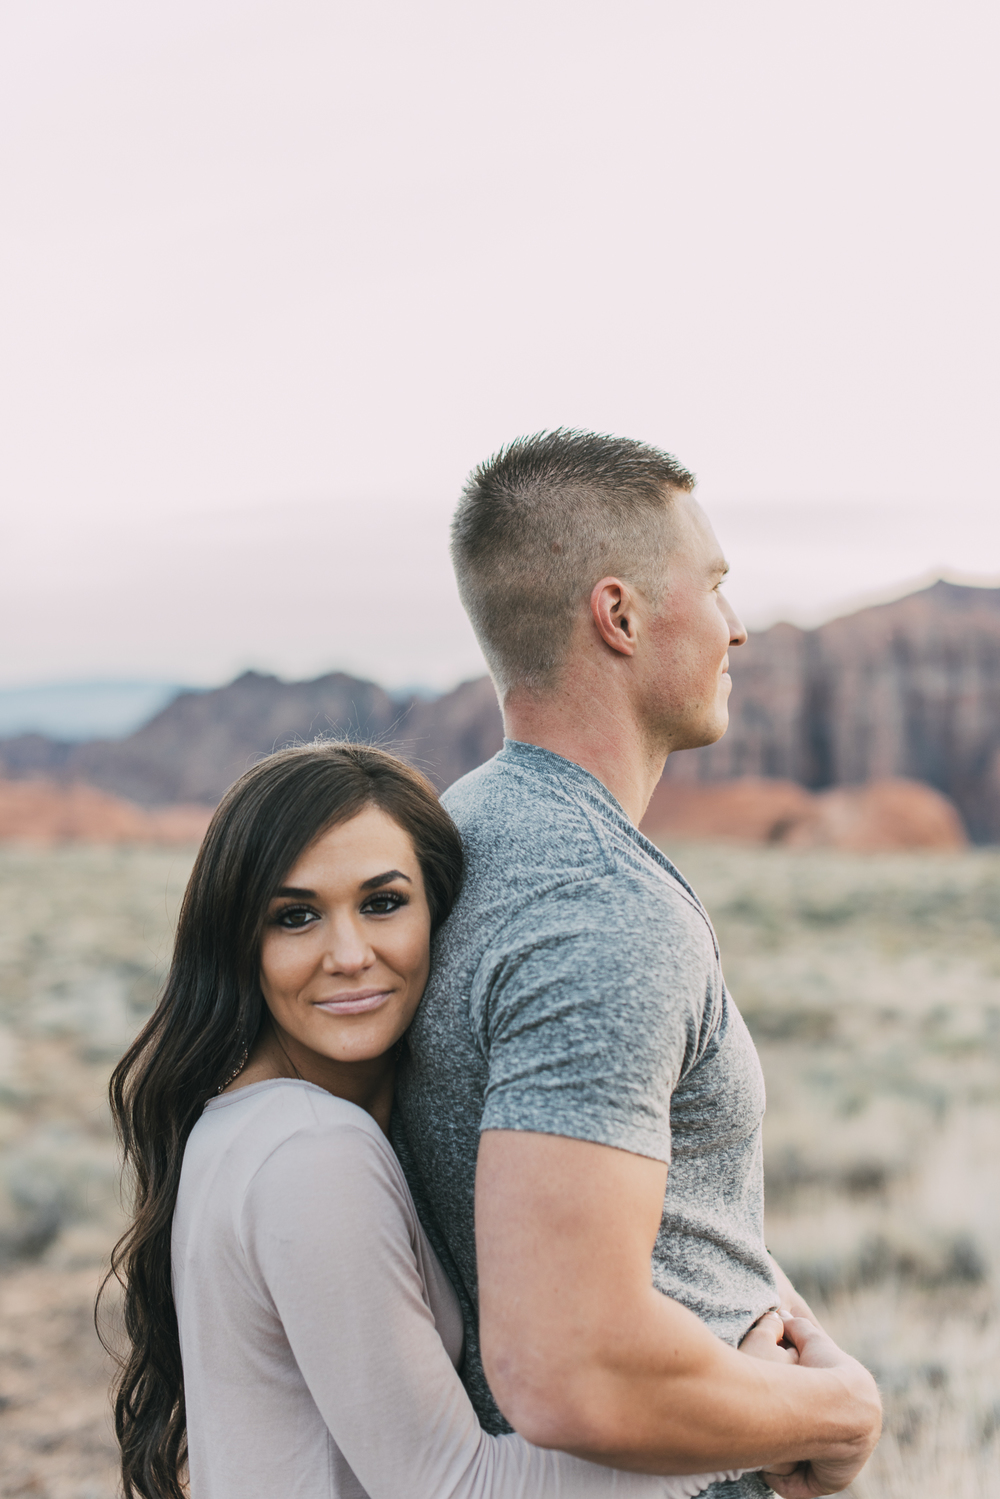 050416KELSEY & RUSTIN ENGAGEMENTS - ST. GEORGE LAS VEGAS PHOTOGRAPHER - DEBI RAE PHOTOGRAPHY-104.jpg